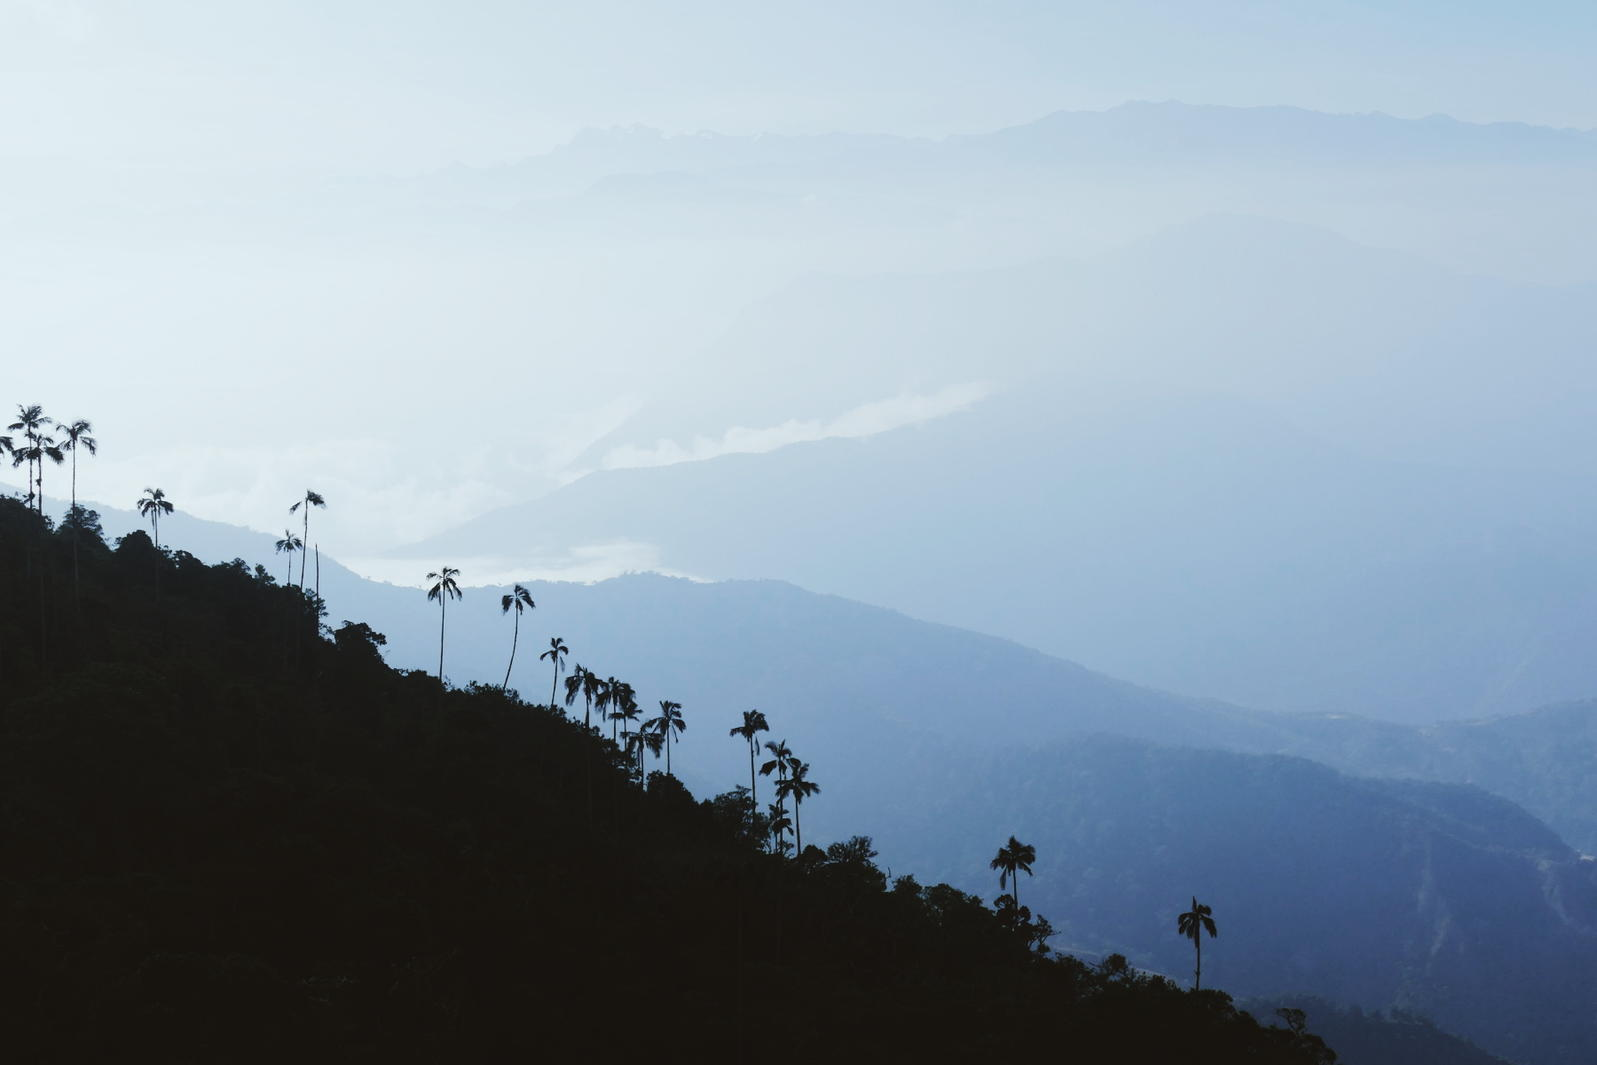 On a clear day, the view from the top of San Lorenzo Ridge is breath-catching, Colombia. Noah Strycker